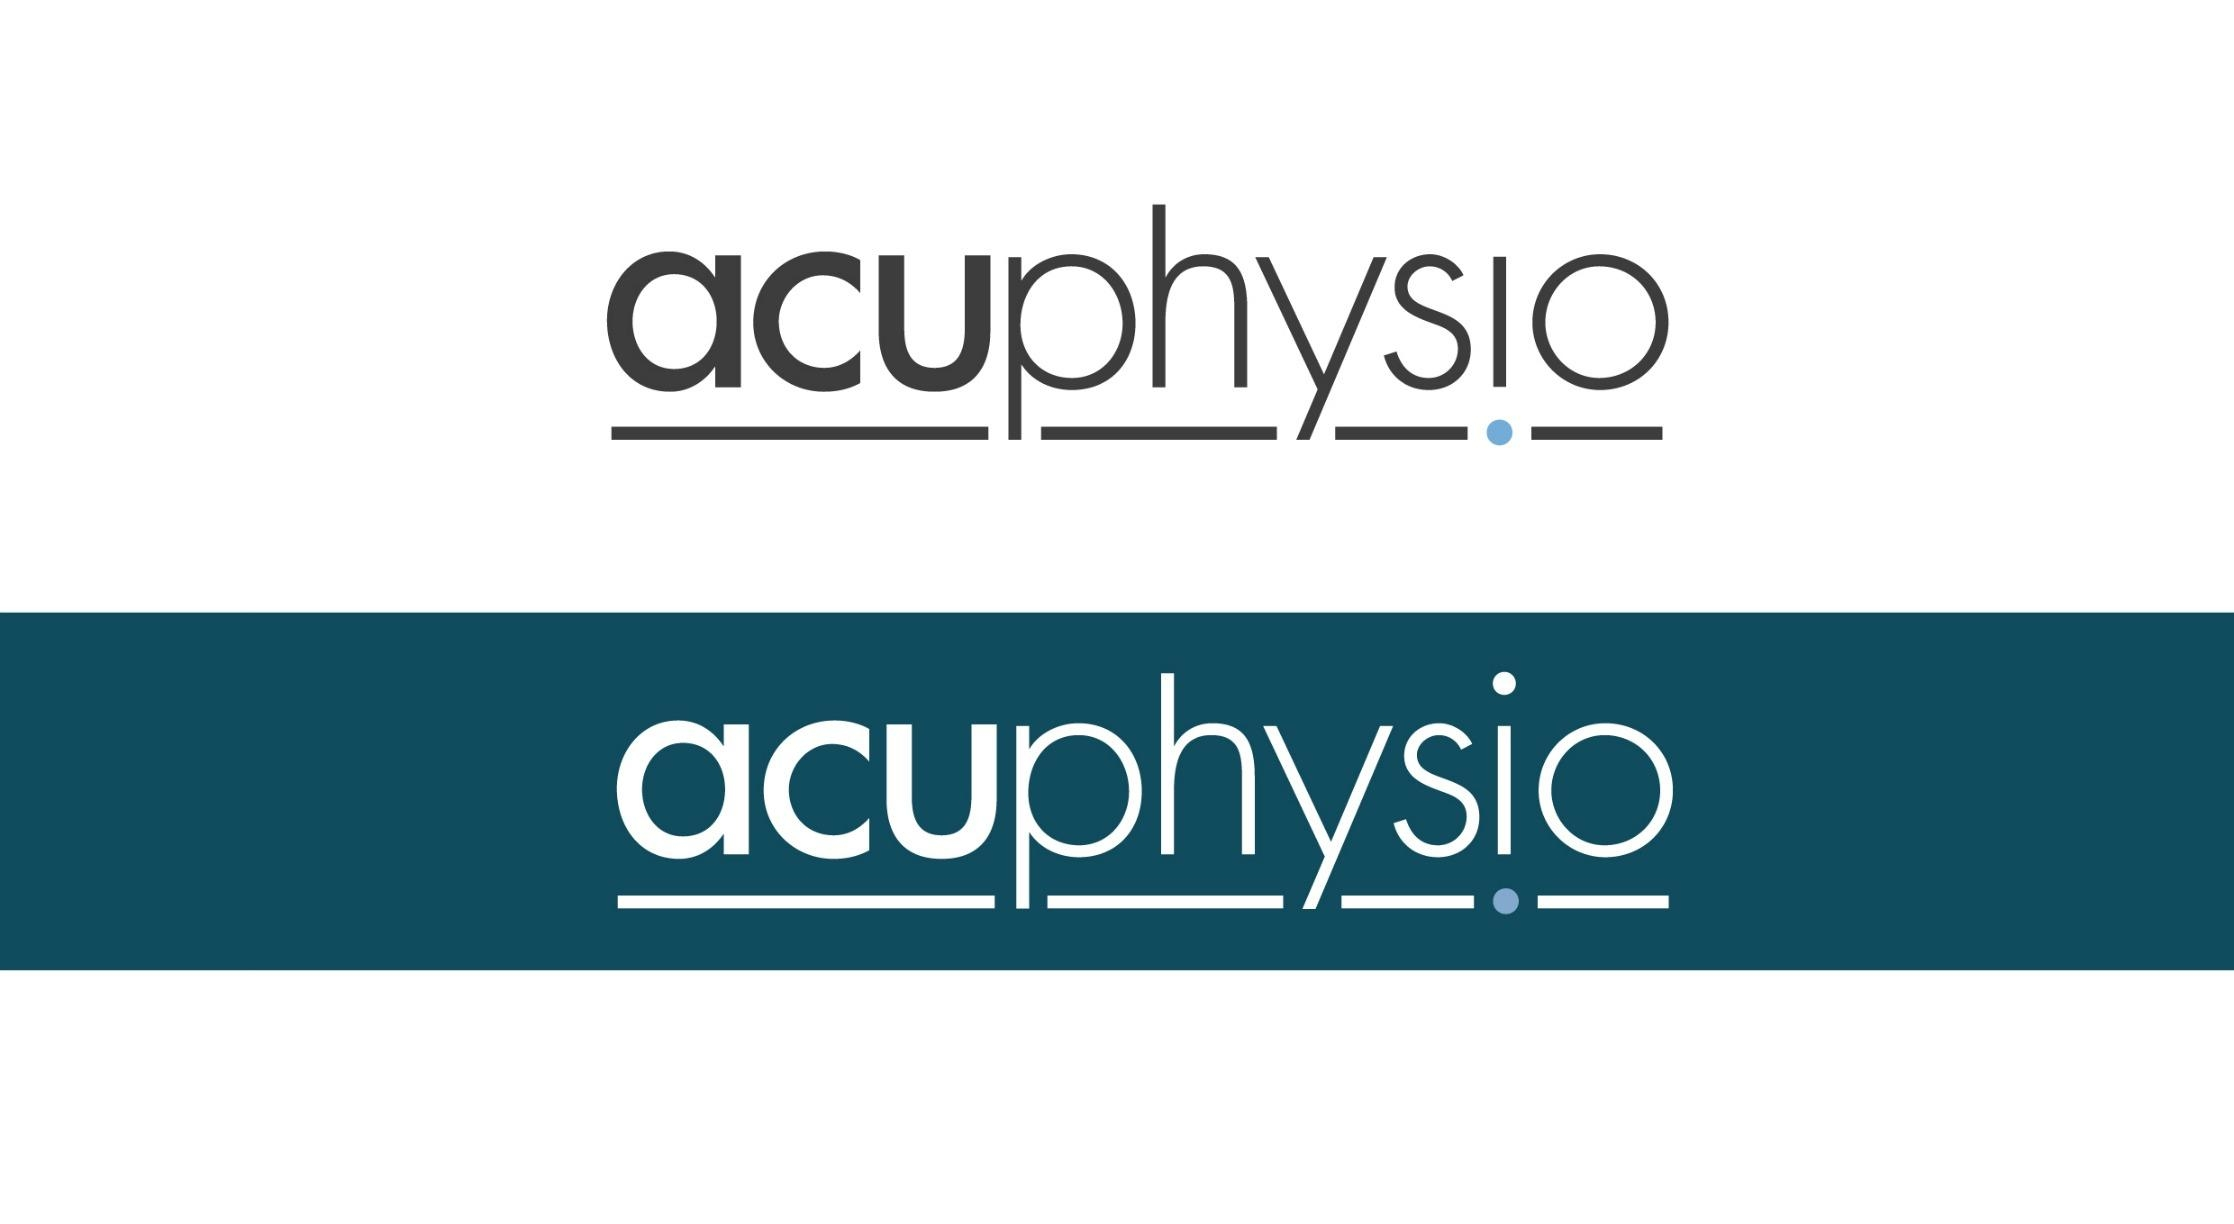 acuphysio acupuncture and physical therapy